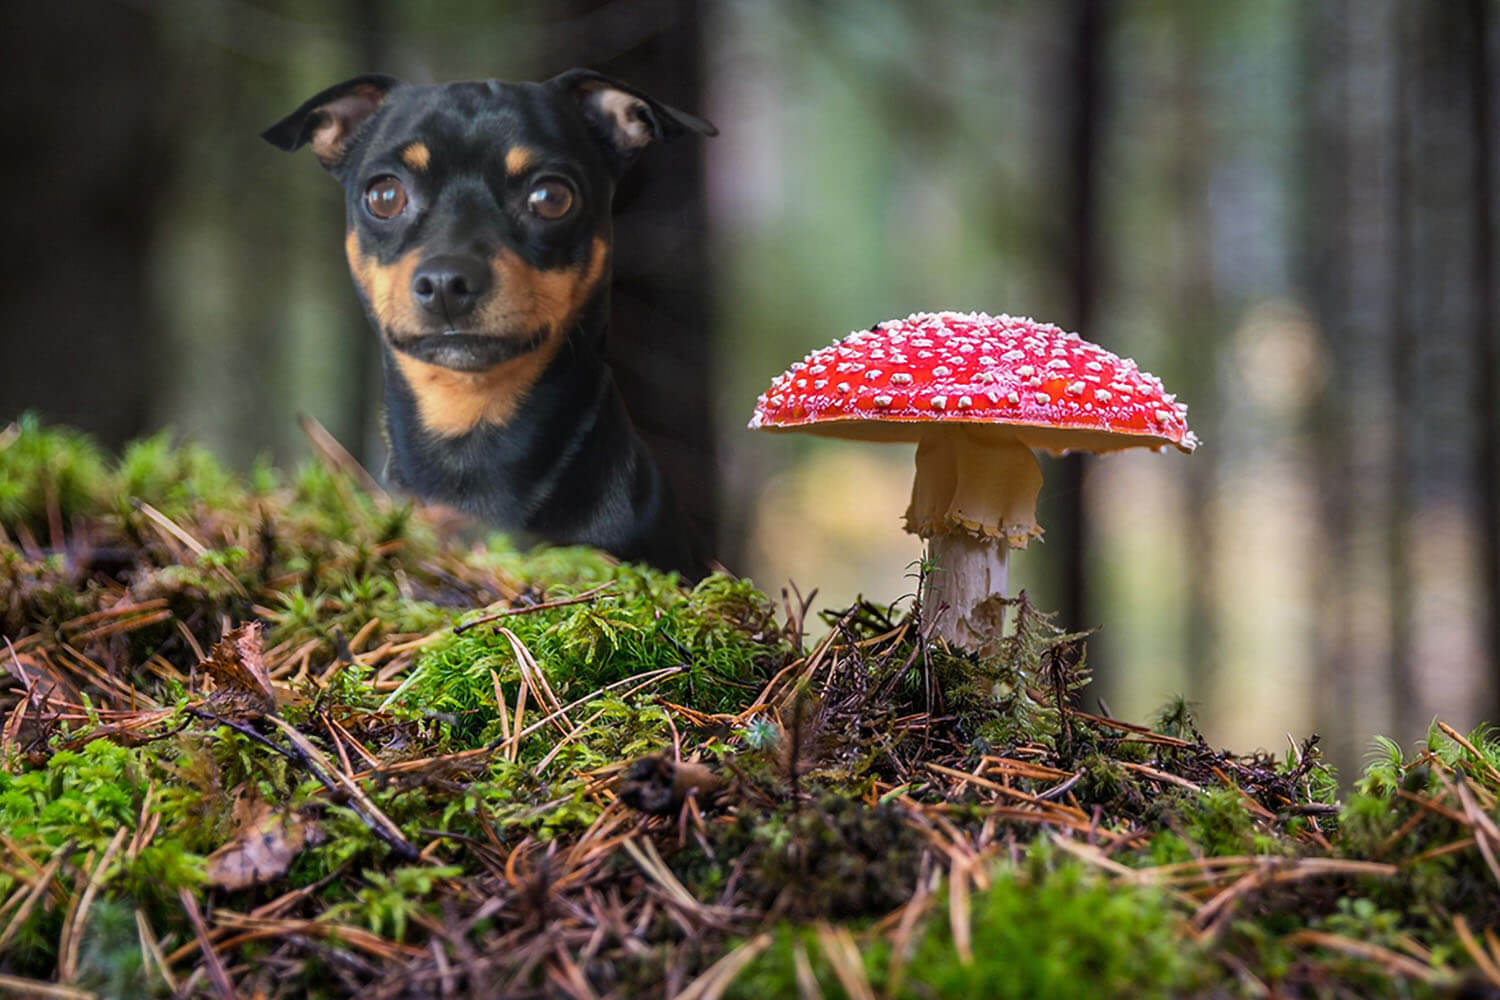 Can Dogs Eat Mushrooms? It's Trickier Than You'd Think!